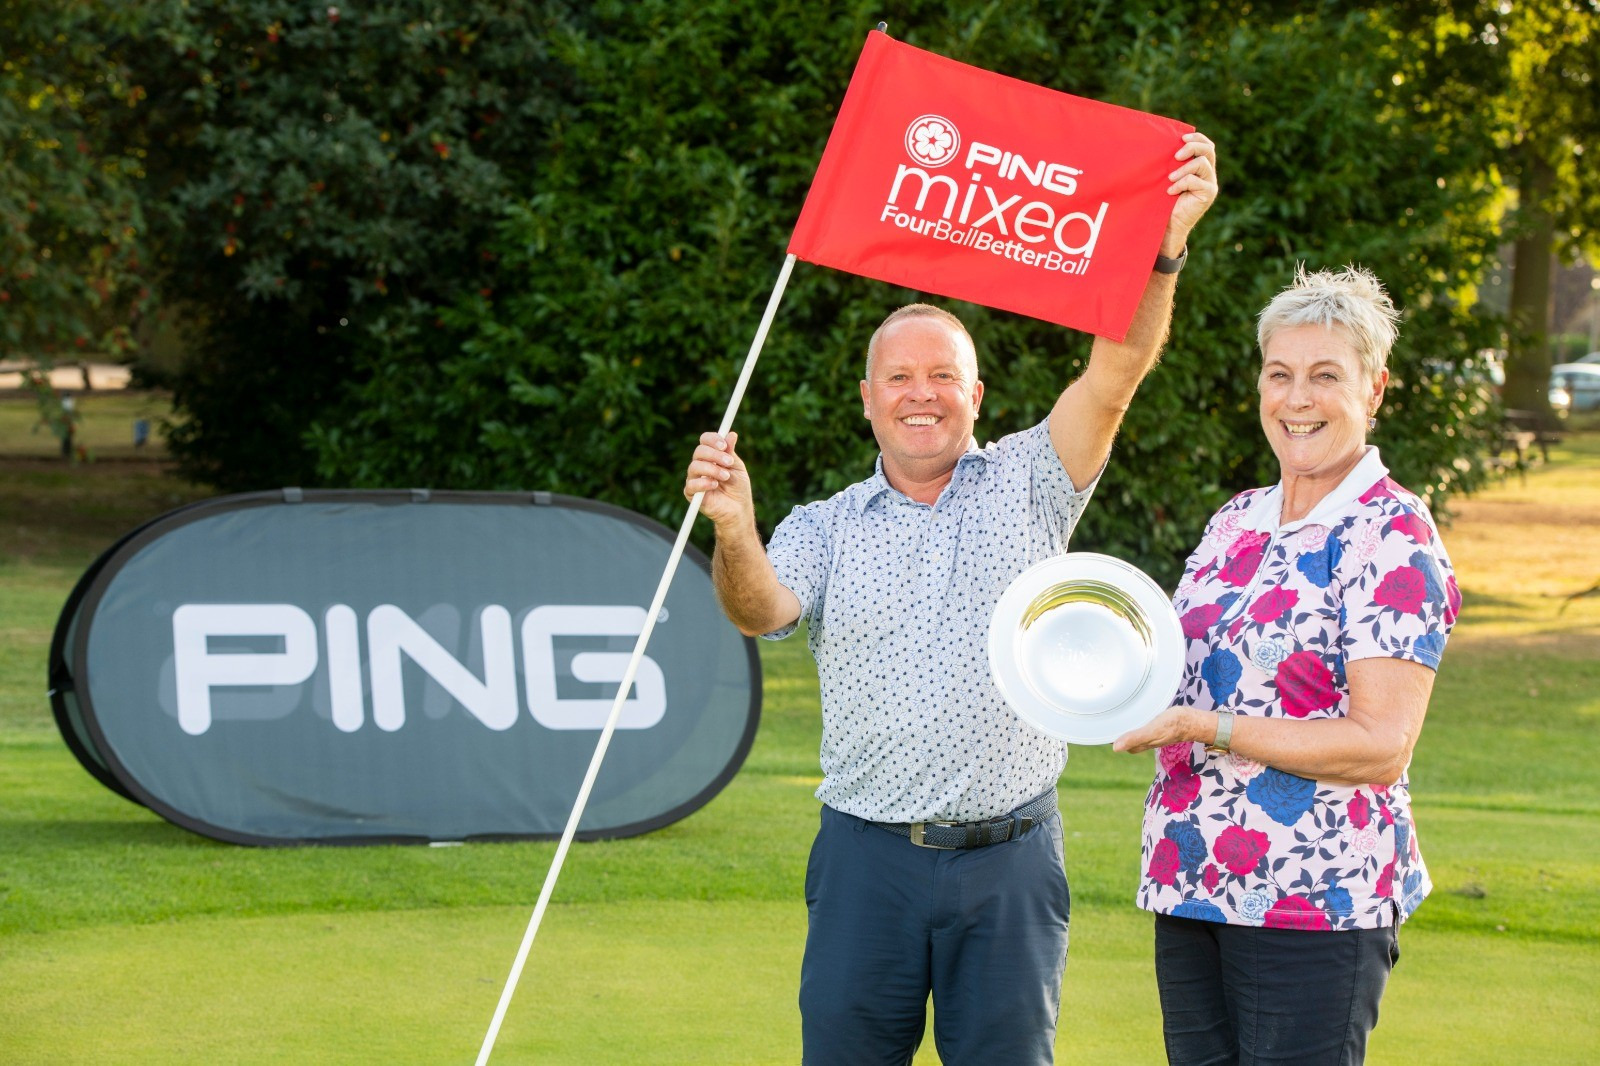 PING Mixed success for Anne and Paul!